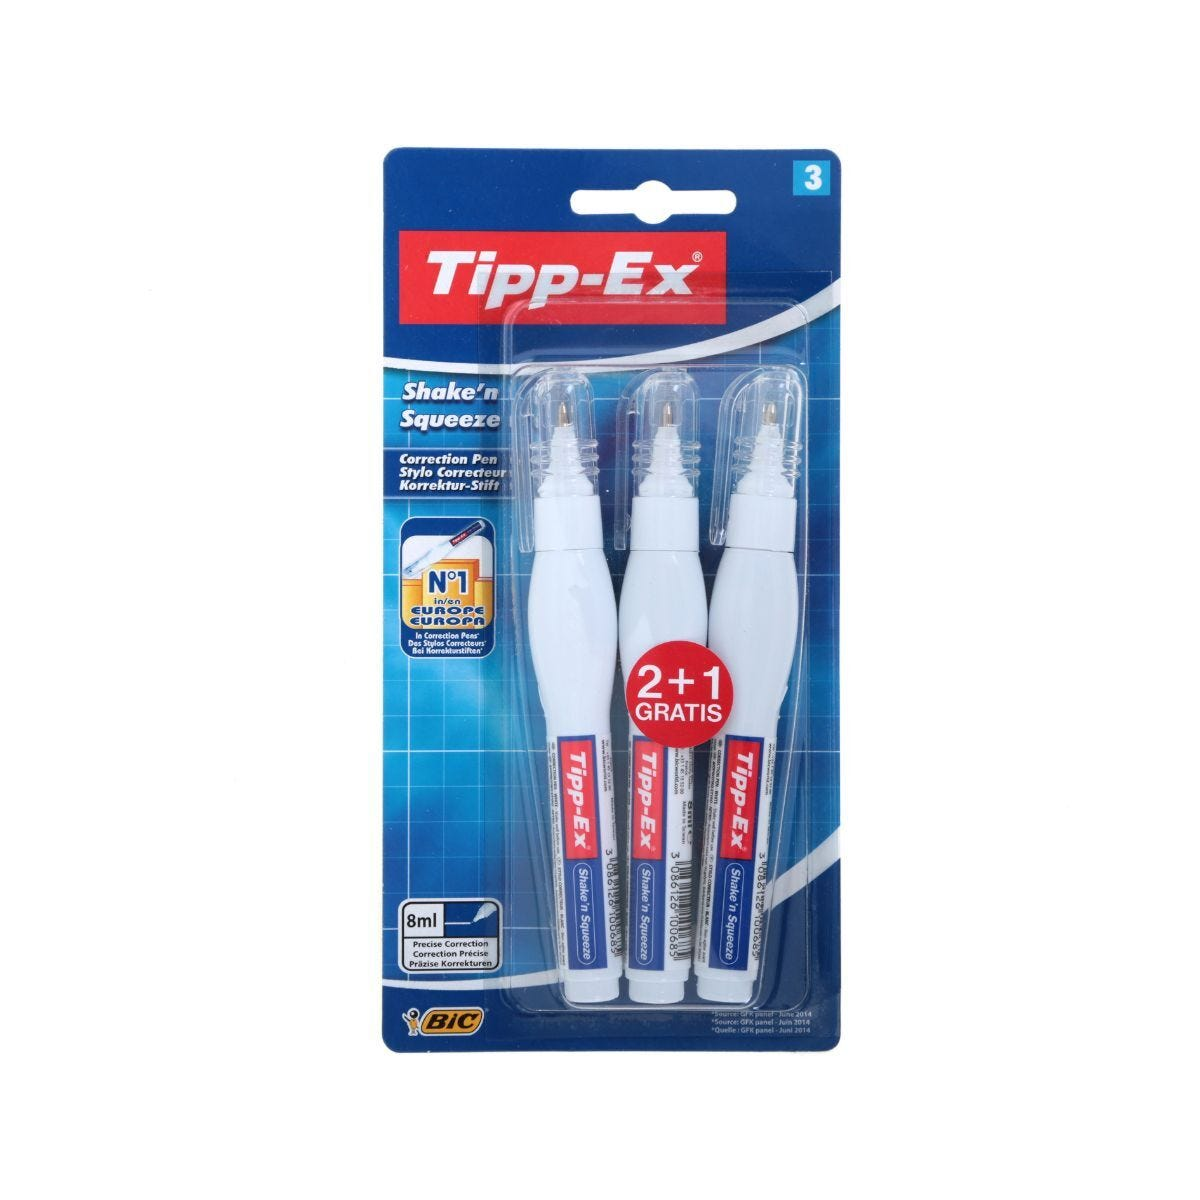 Tipp-Ex Shake n Squeeze Blister Pack of 3